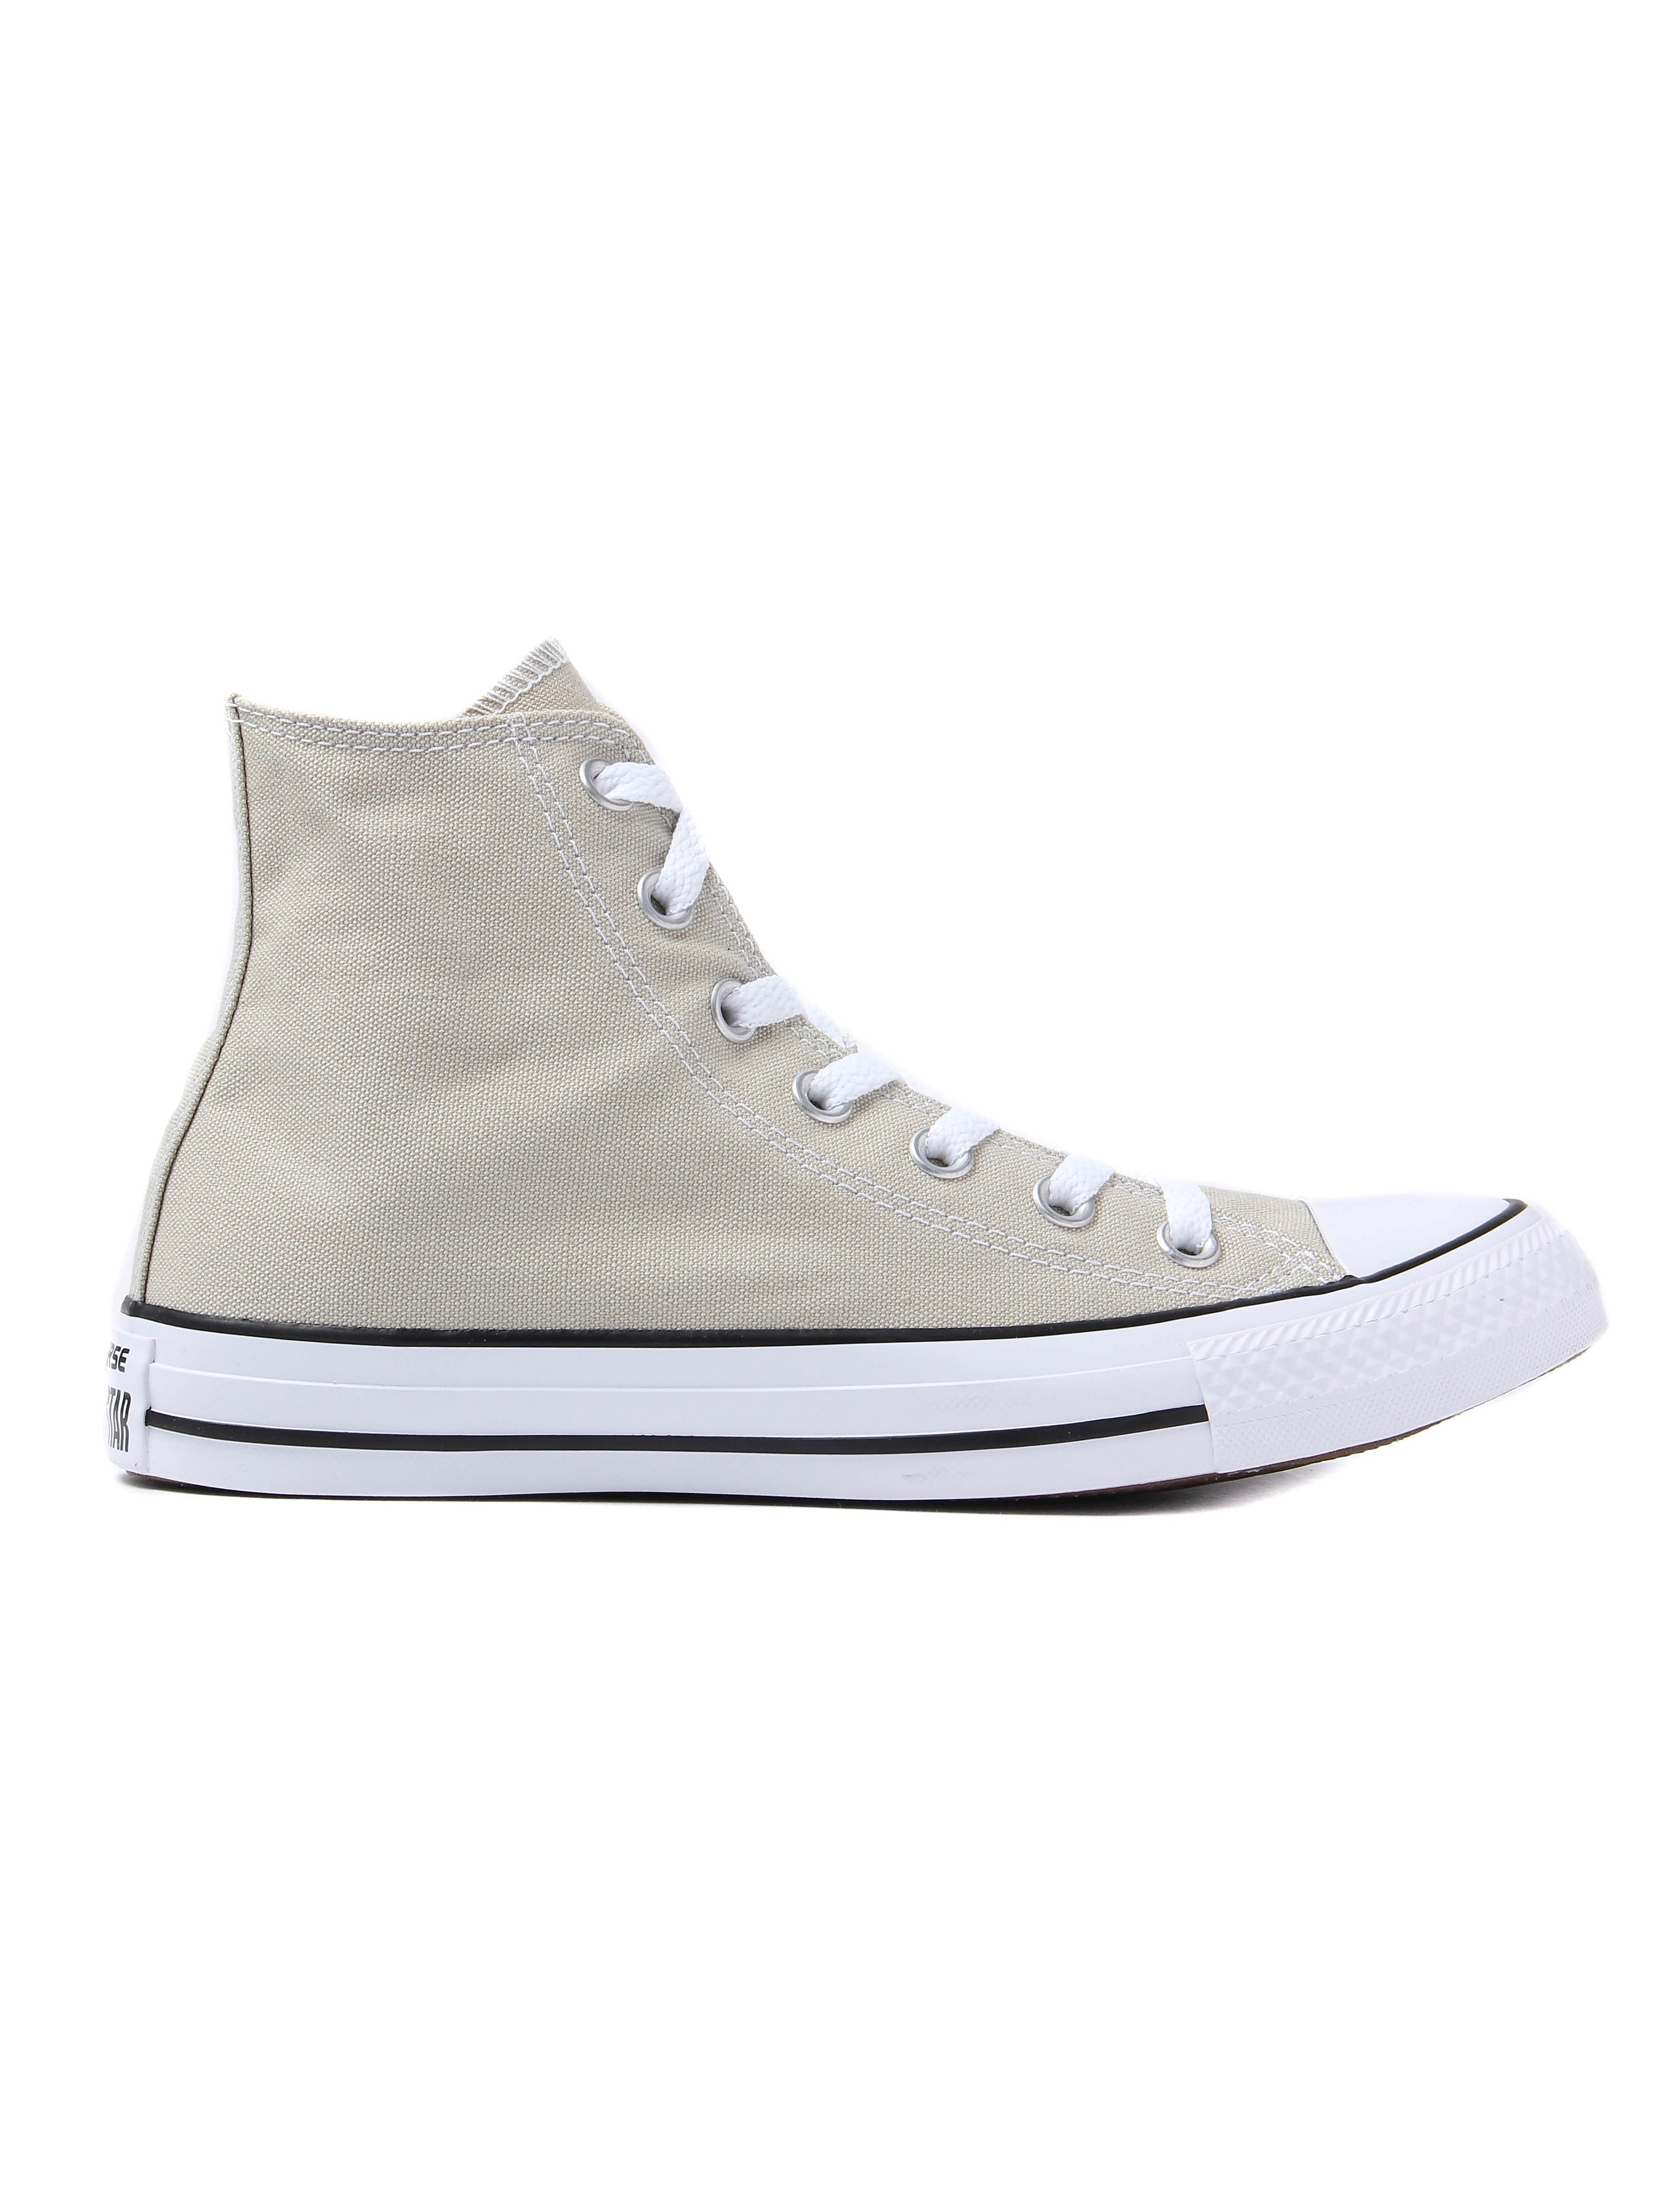 Converse Unisex Chuck Taylor All Star HI Trainers - Light Surplus